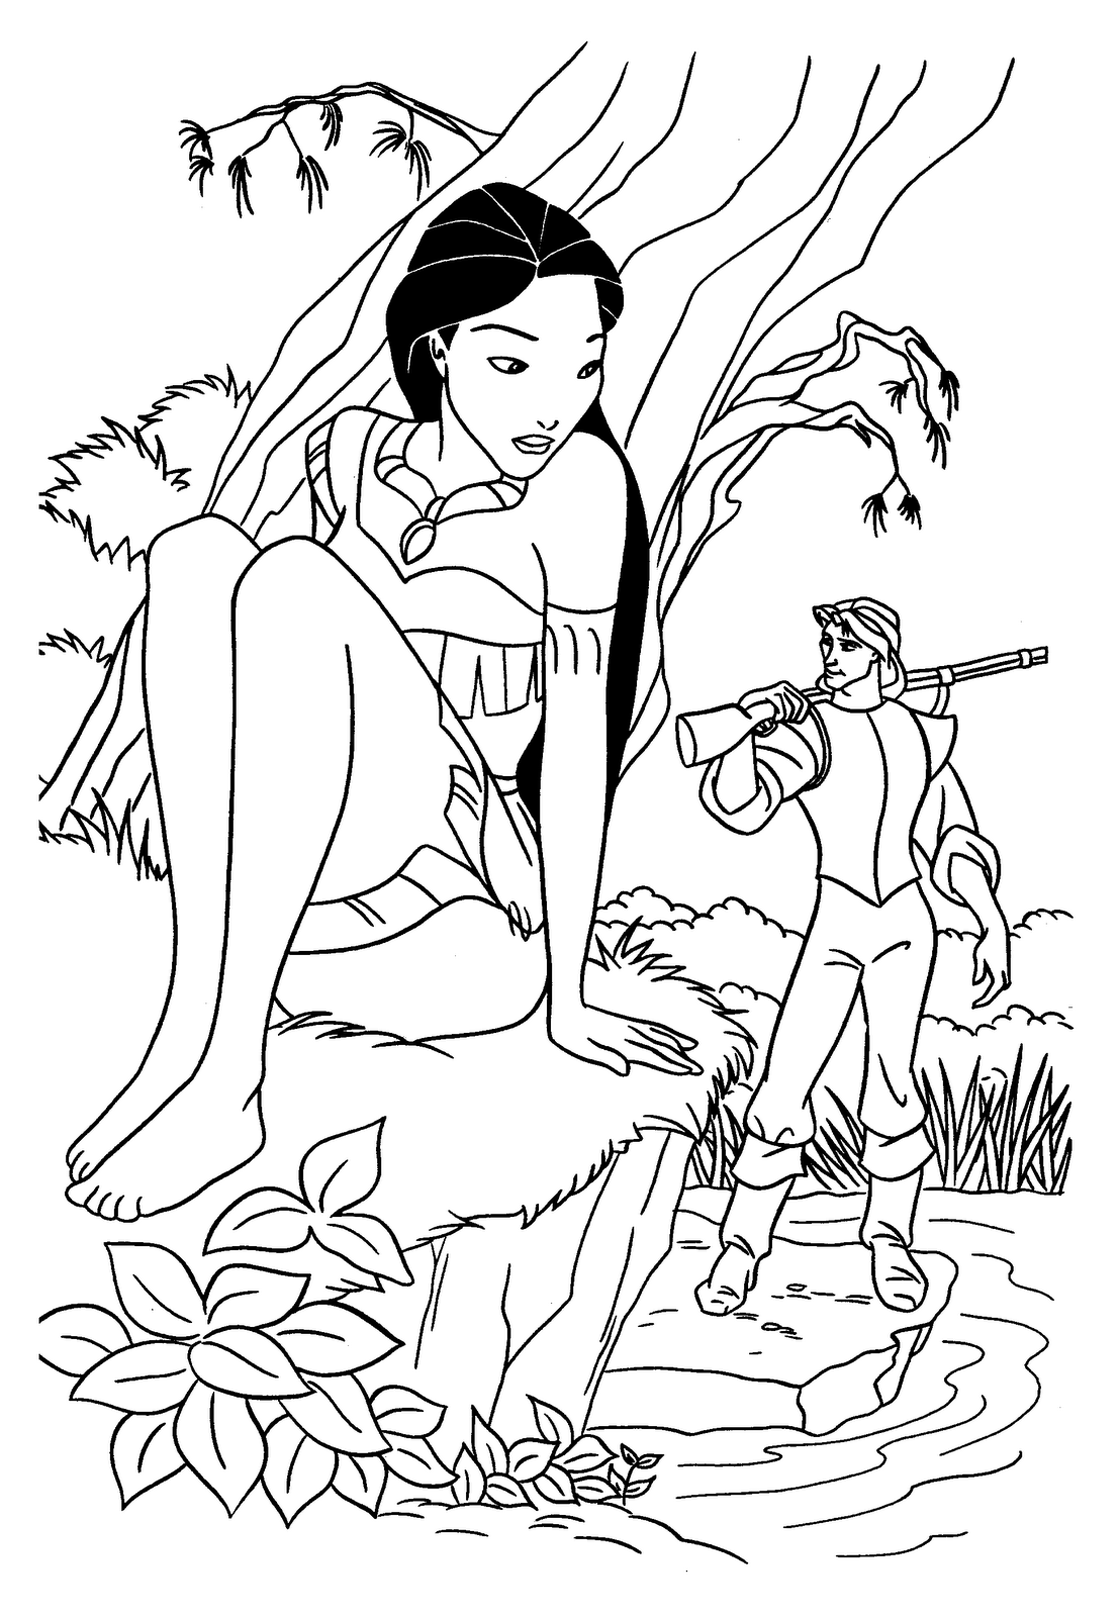 Pocahontas for children - Pocahontas Kids Coloring Pages